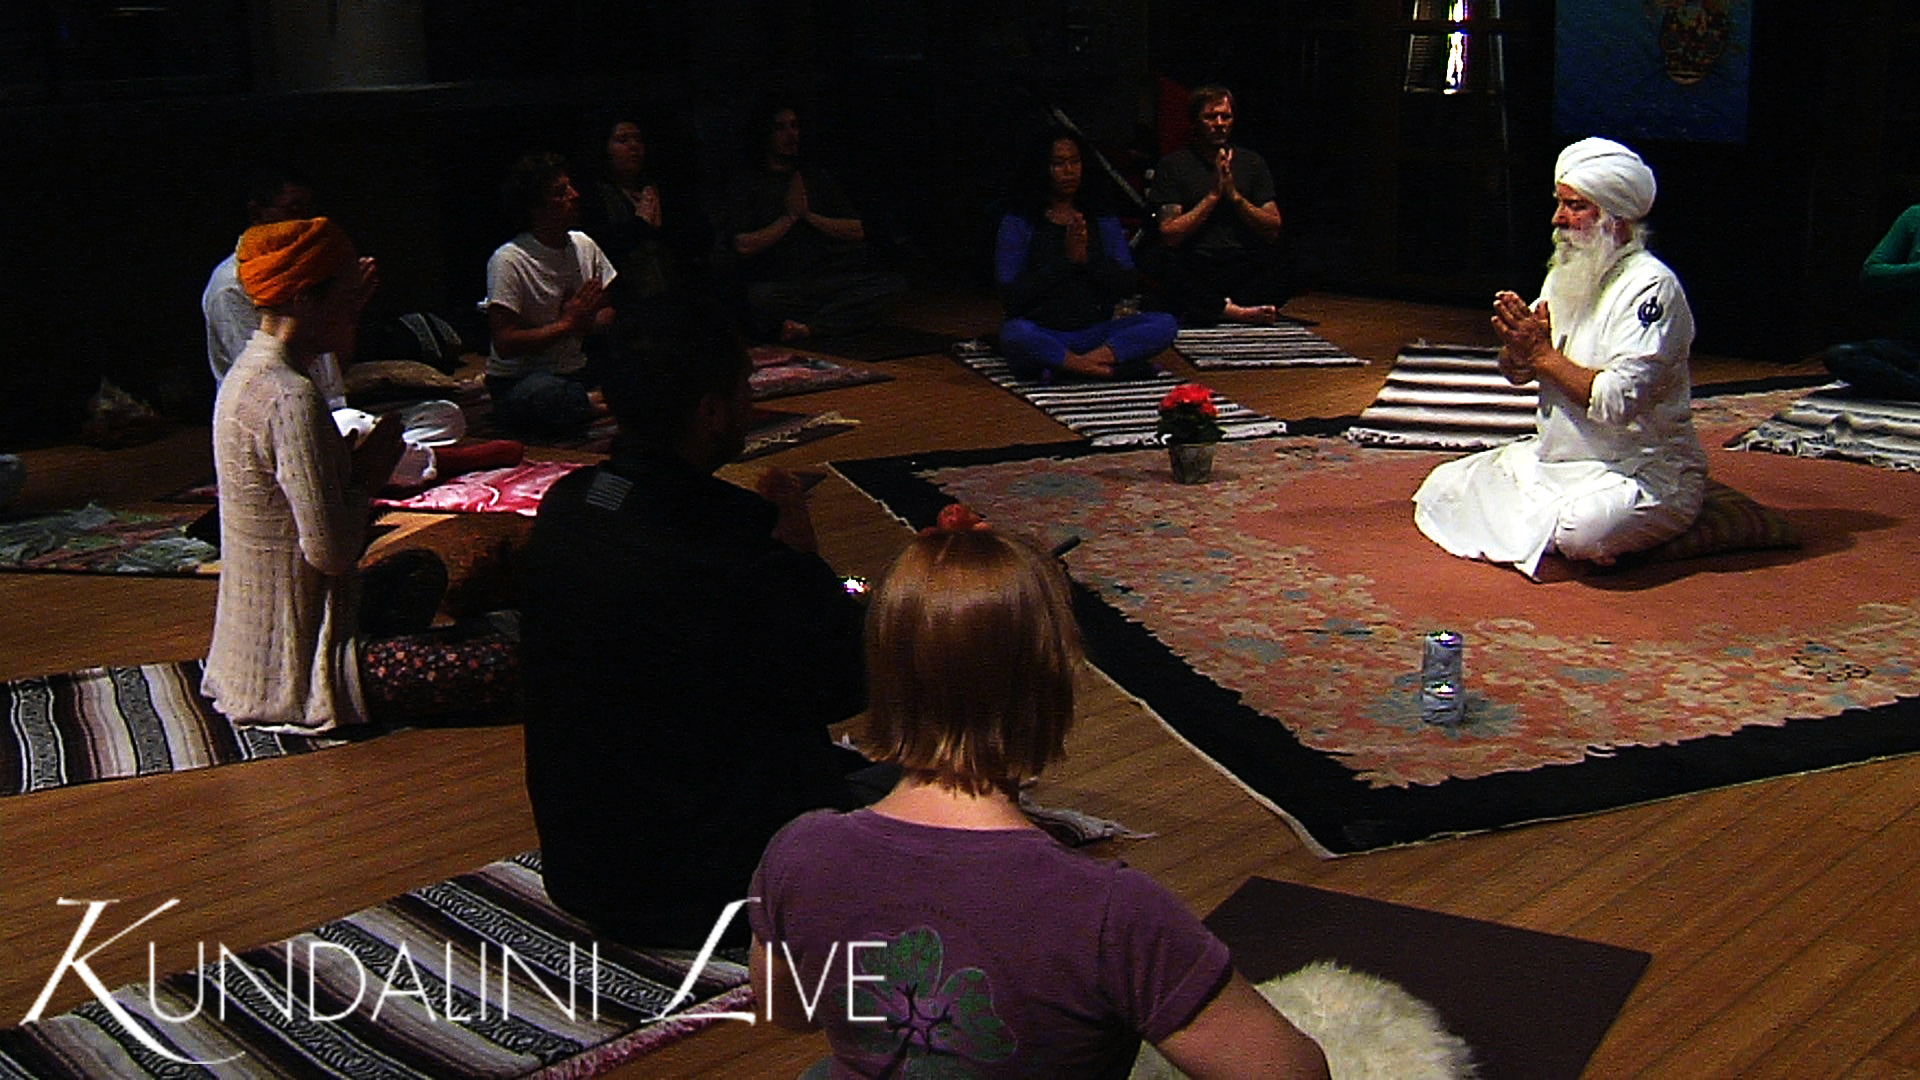 yoga class invocation meditation in anjali mudra prayer pose guided power connection breathing